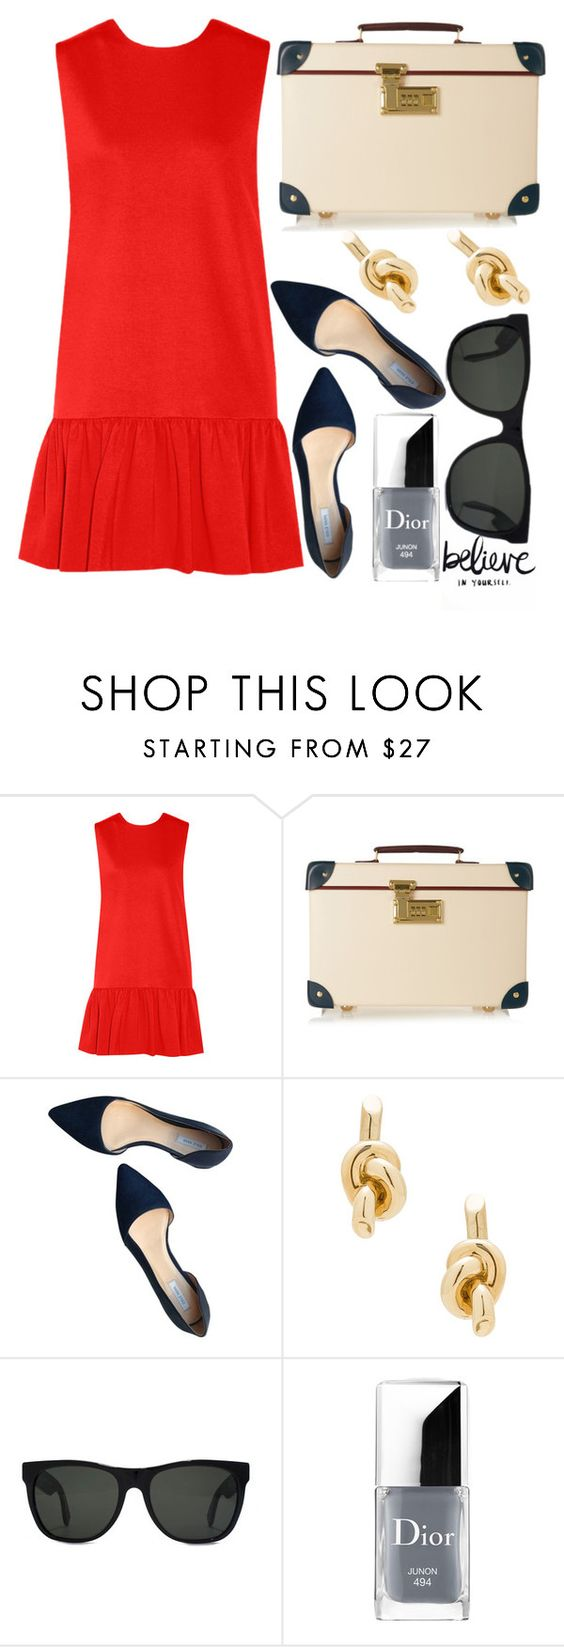 """Untitled #828"" by poshandy ❤ liked on Polyvore featuring MSGM, Globe-Trotter, Cole Haan, Balenciaga, RetroSuperFuture and Christian Dior"